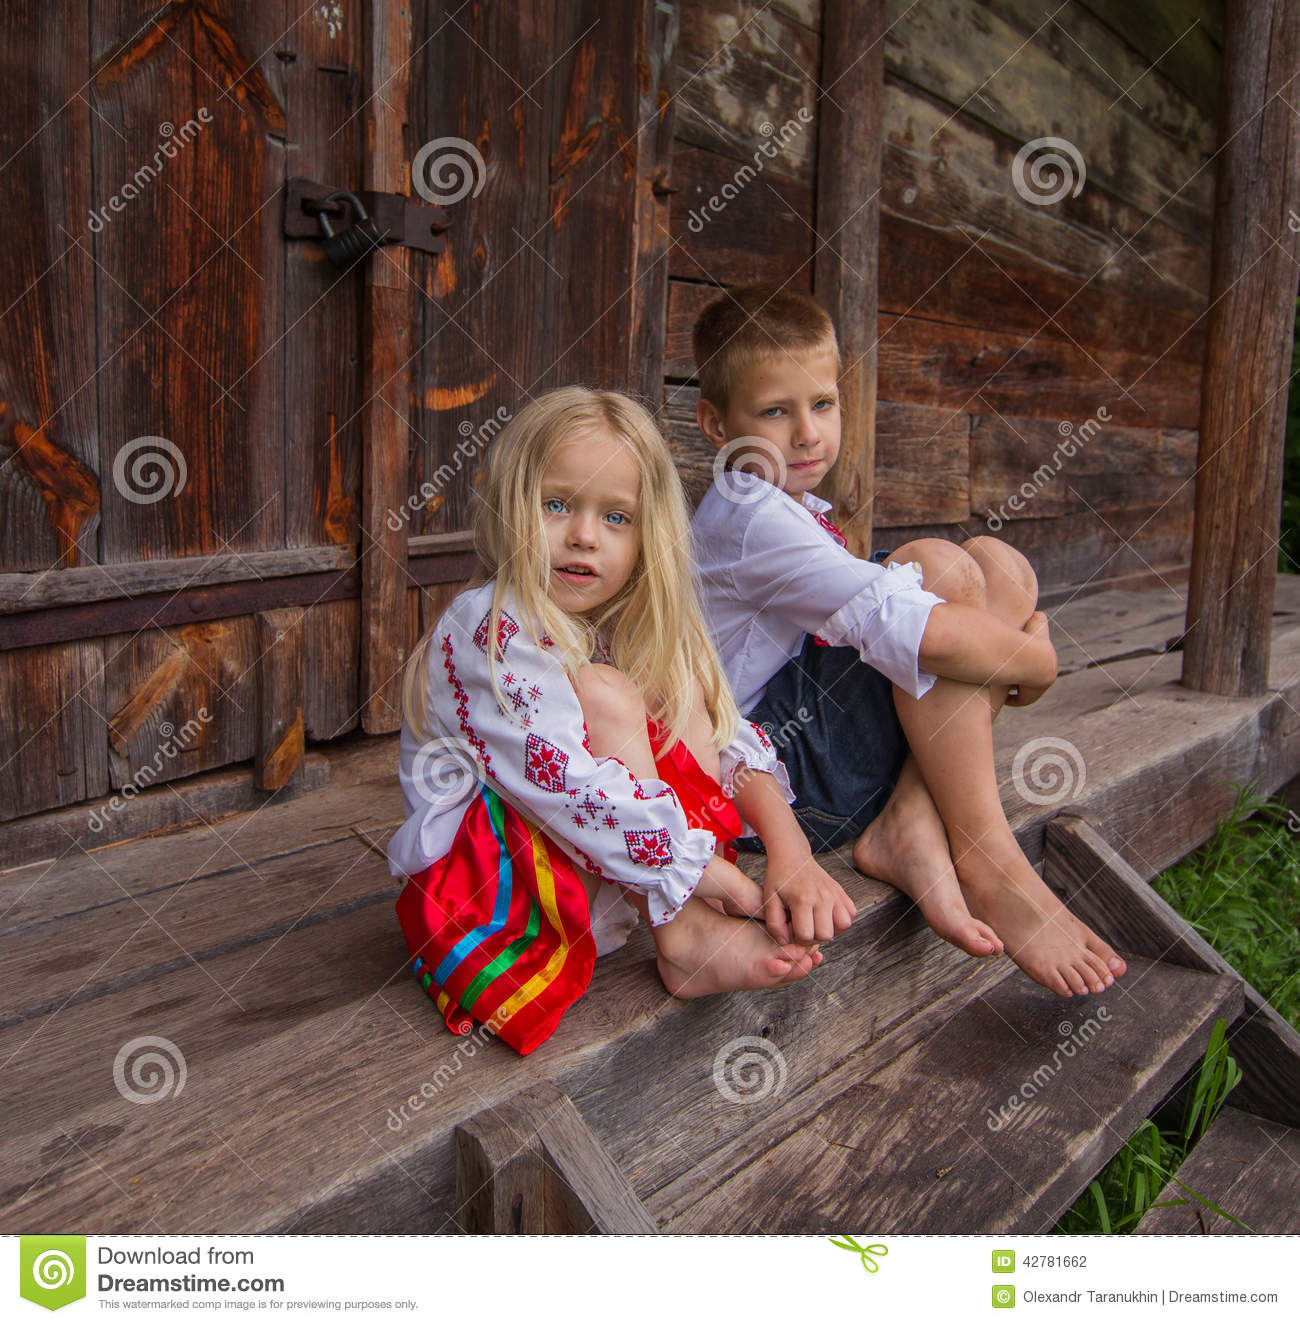 Boy And Girl Wallpaper Hd Download Ukrainian Children Near Old Wooden House Stock Photo